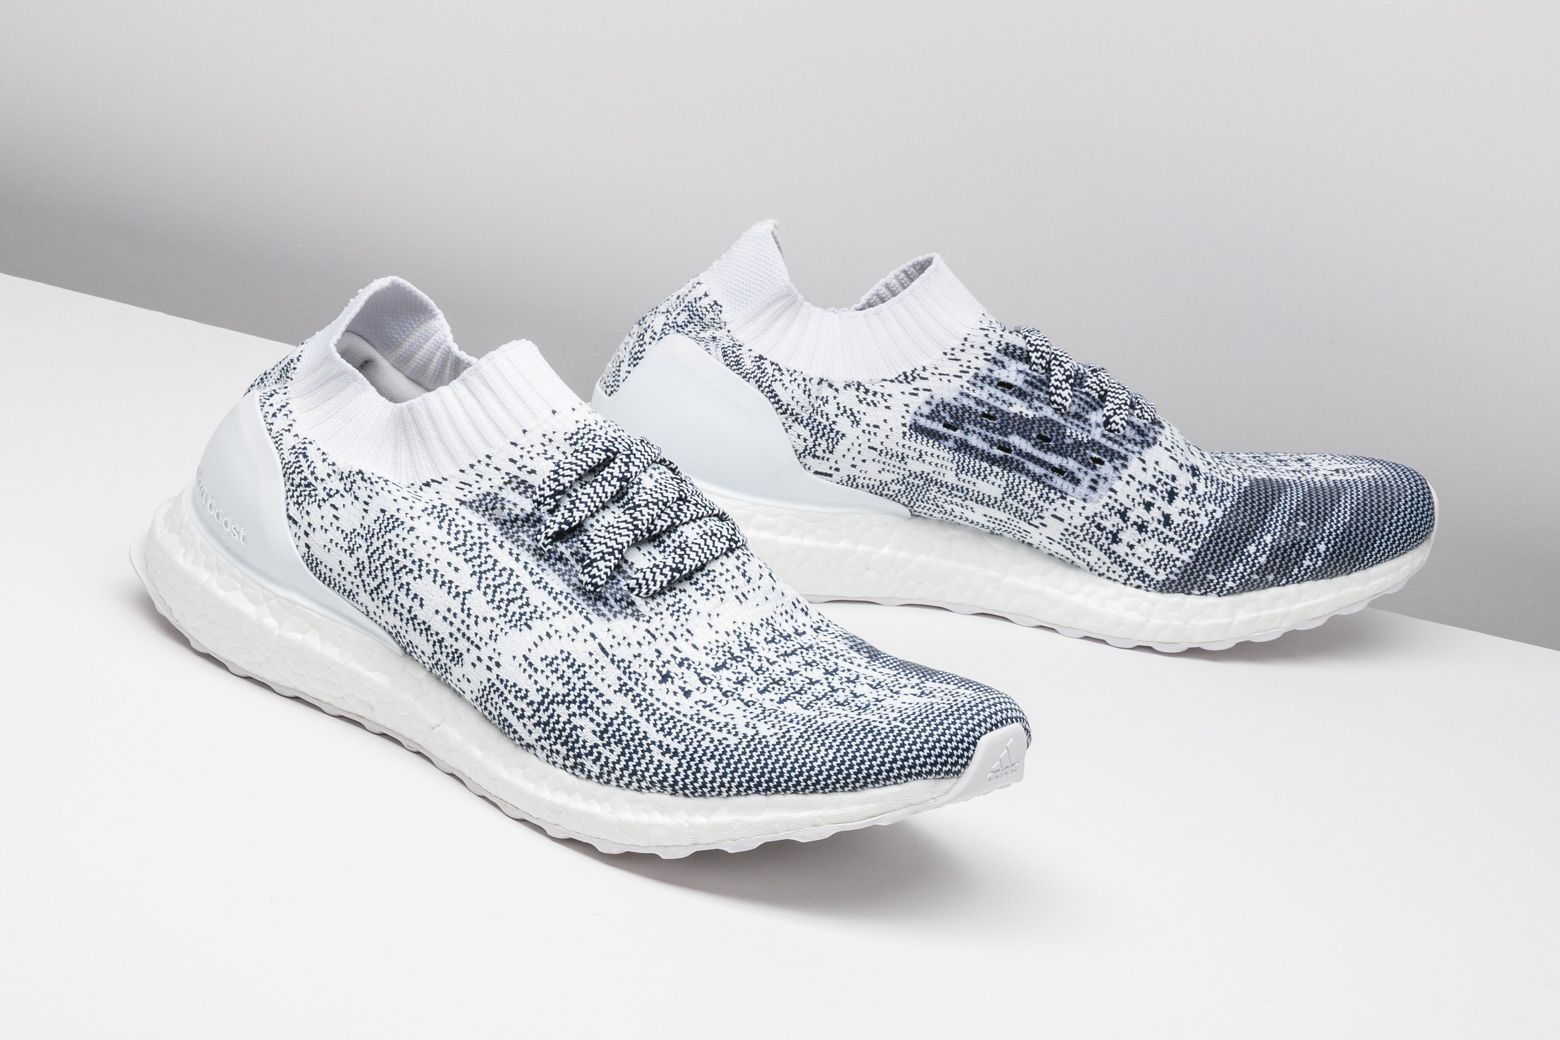 adidas ultra boost uncaged white reflective adidas nmd r1 primeknit french beige